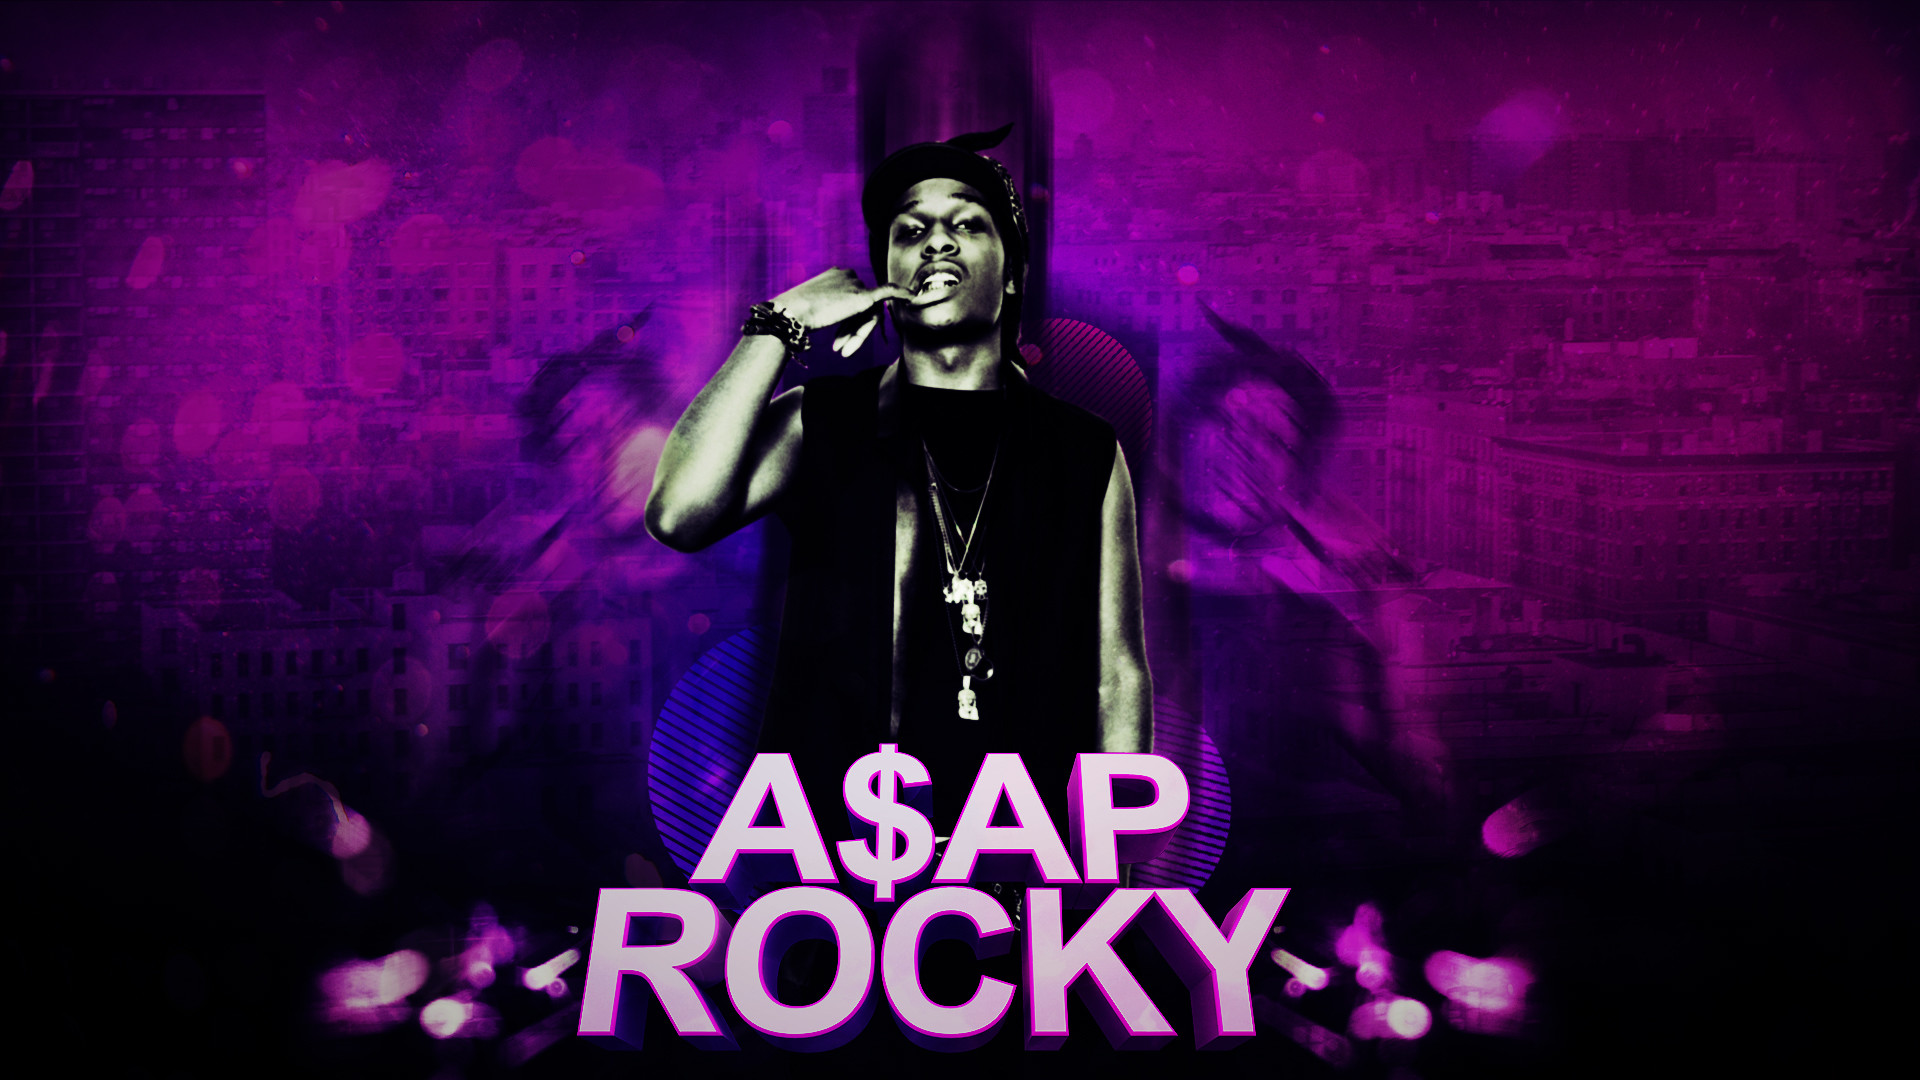 Gucci Mane Iphone Wallpaper Asap Rocky Iphone 5 Wallpaper 65 Images